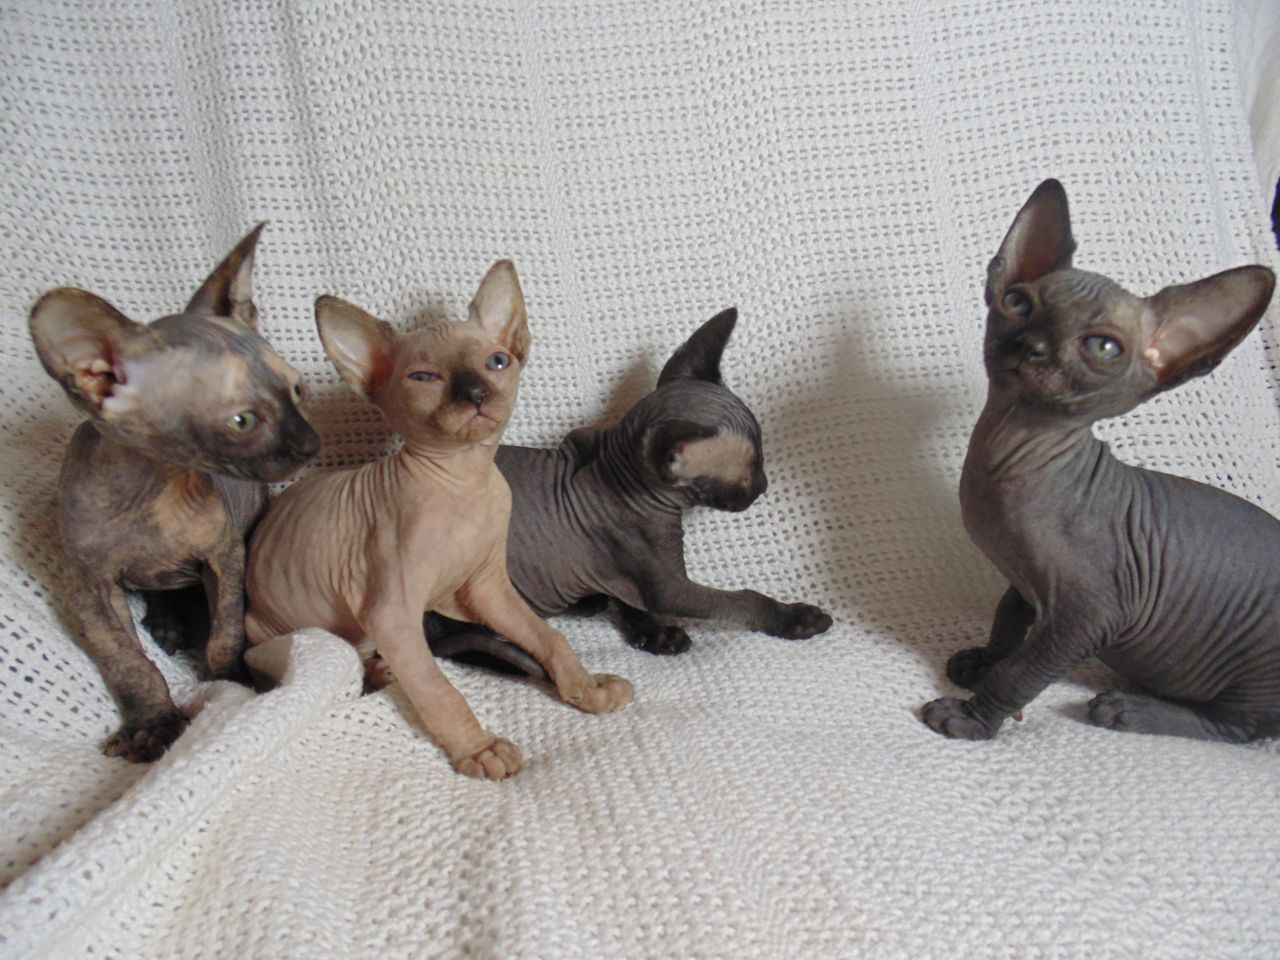 I have some lovely friendly baby sphynx for sale